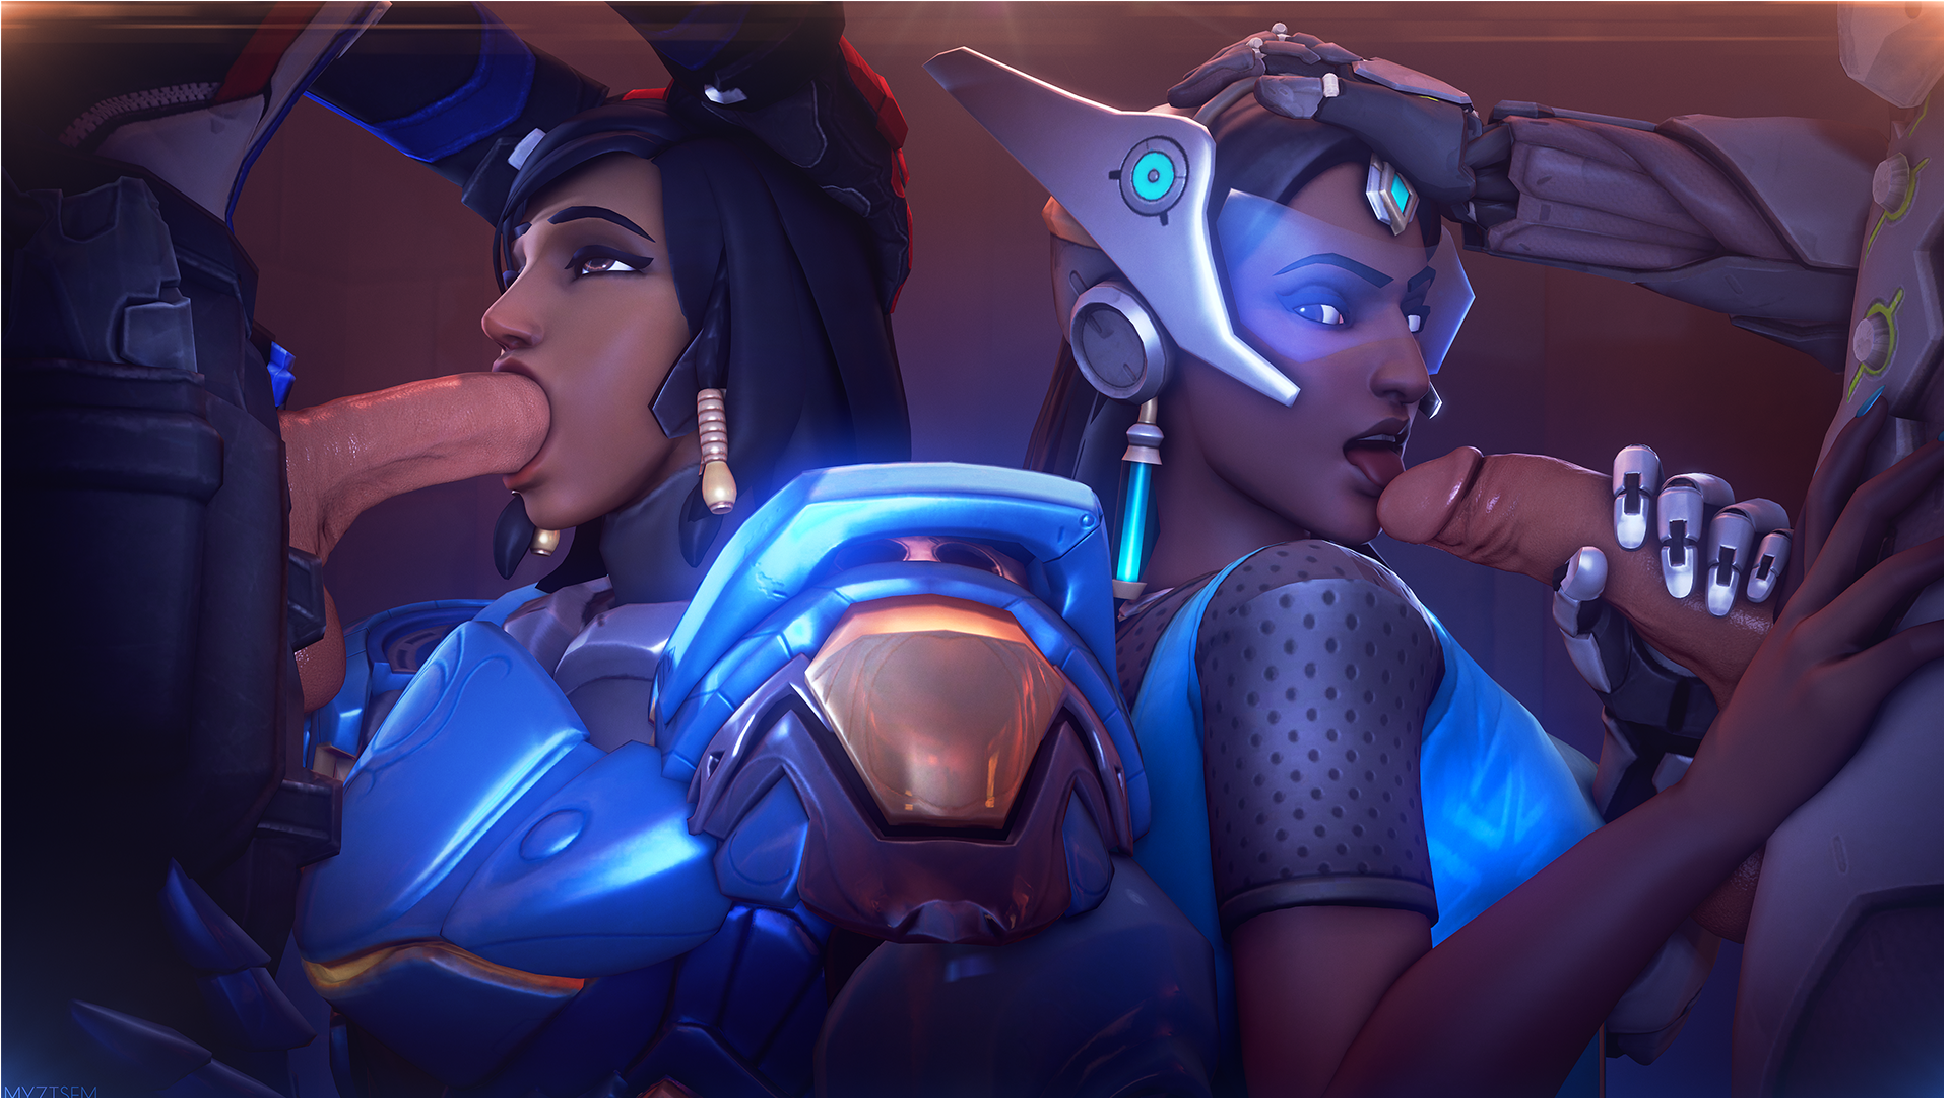 genji_shimada-overlook-pharah-soldier_76-symmetra-myztsfm-source_filmmaker